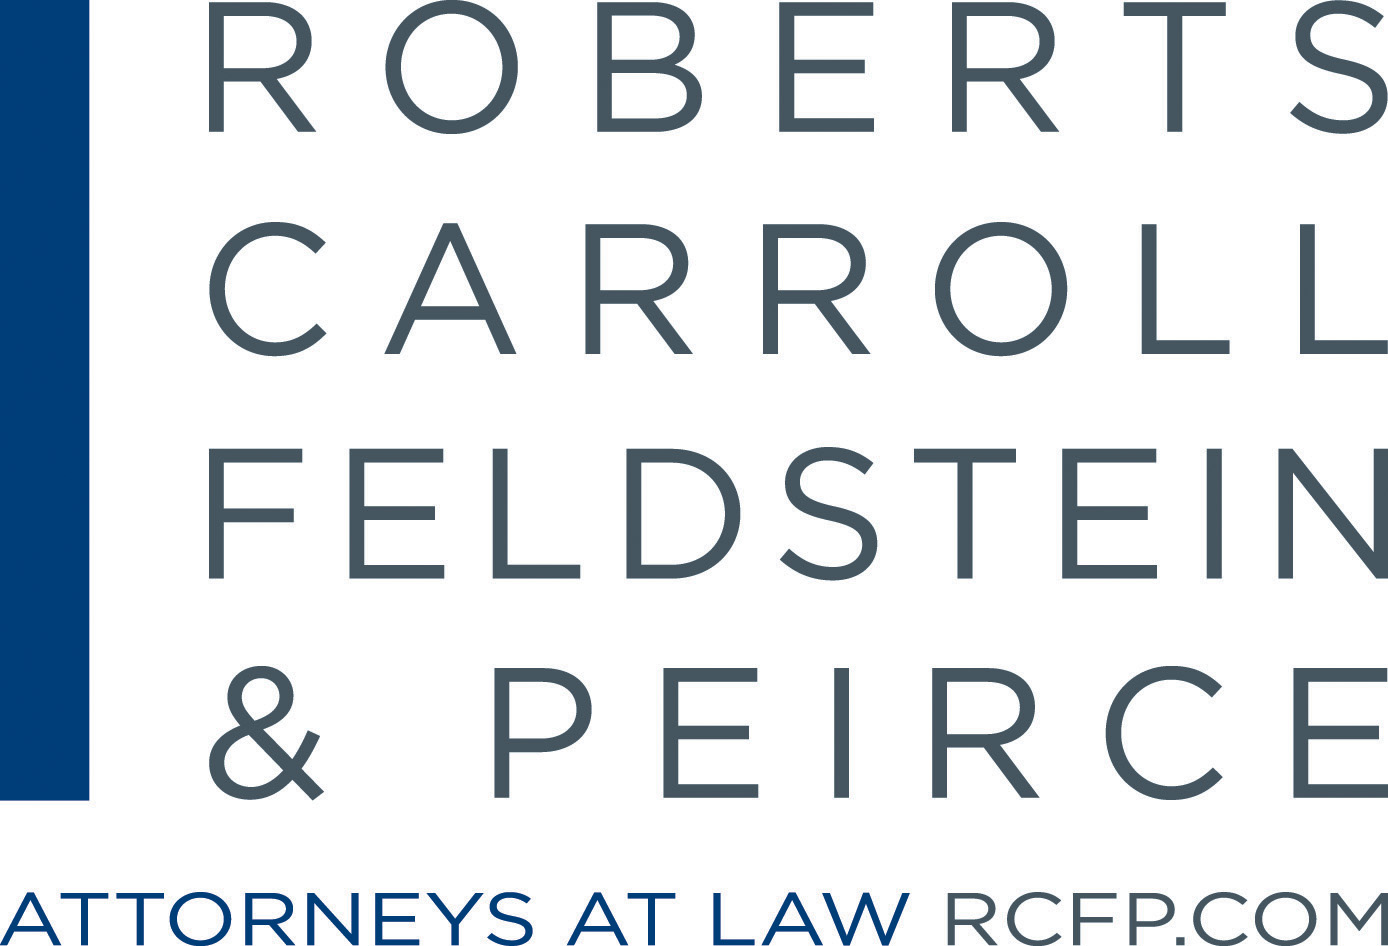 Roberts Carroll Feldstein Pierce